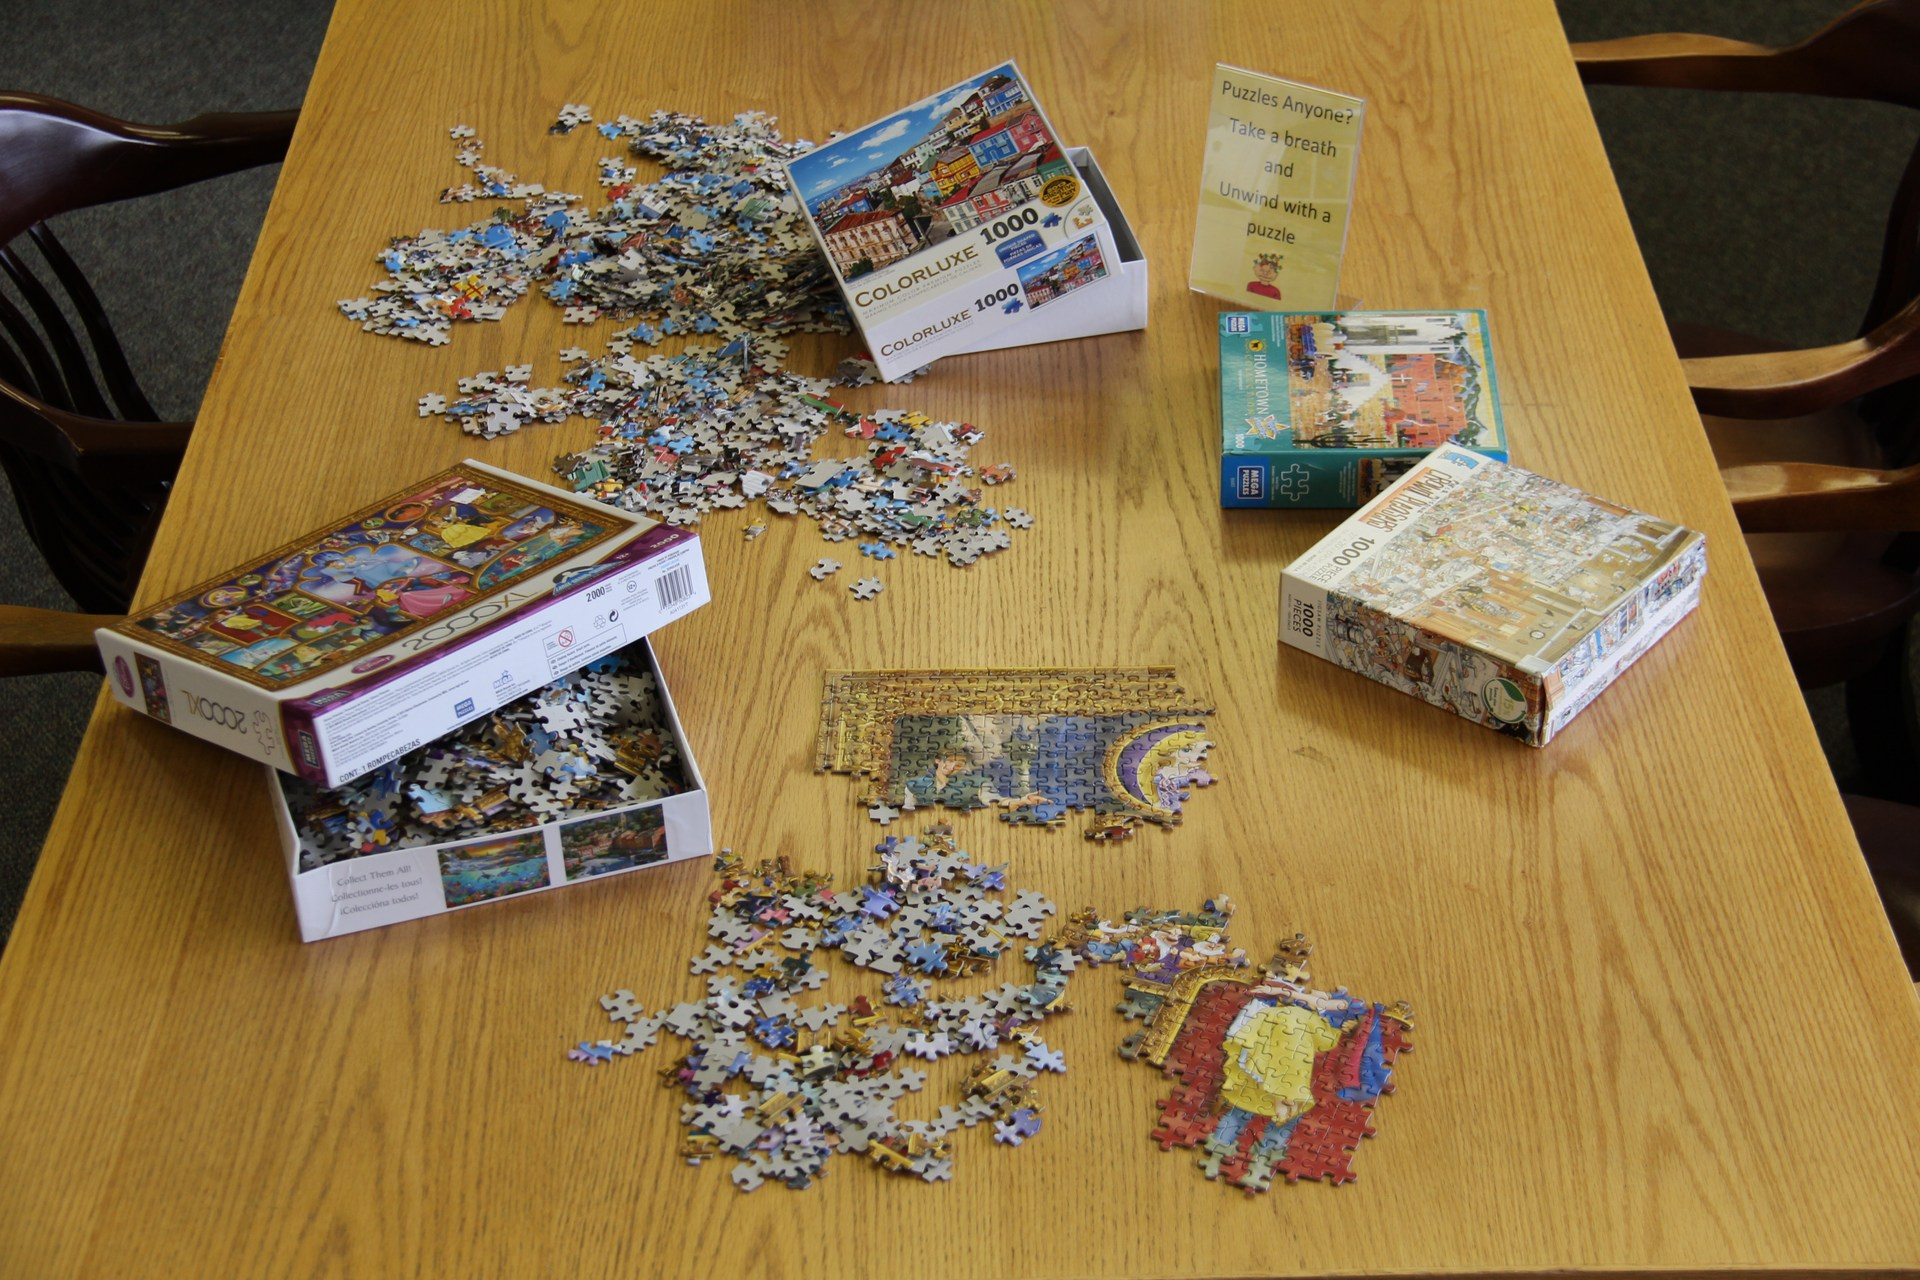 Image of puzzles in Library